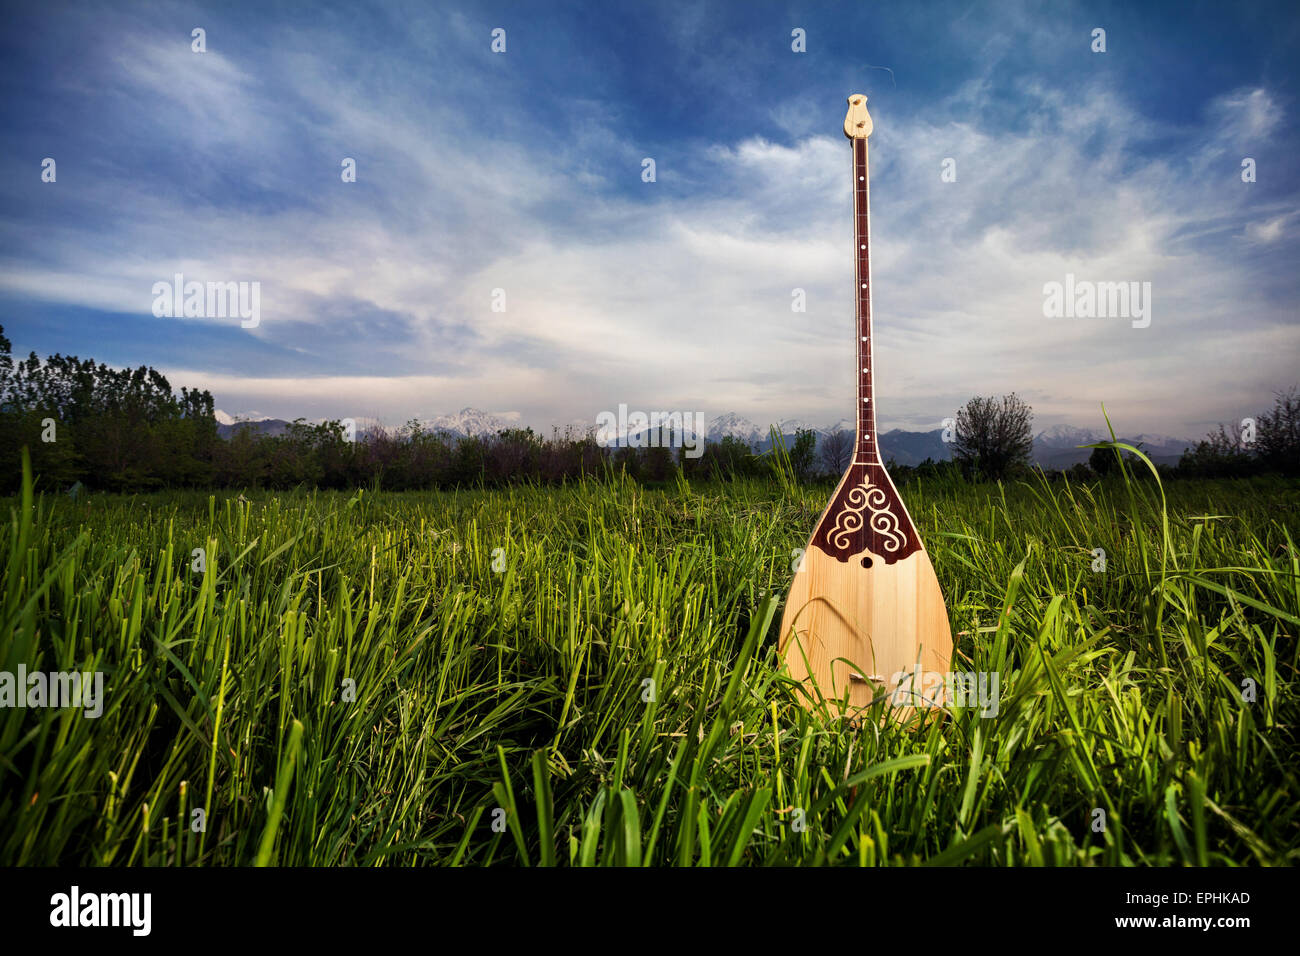 Dombra Kazakh instrument in the grass at blue sky - Stock Image